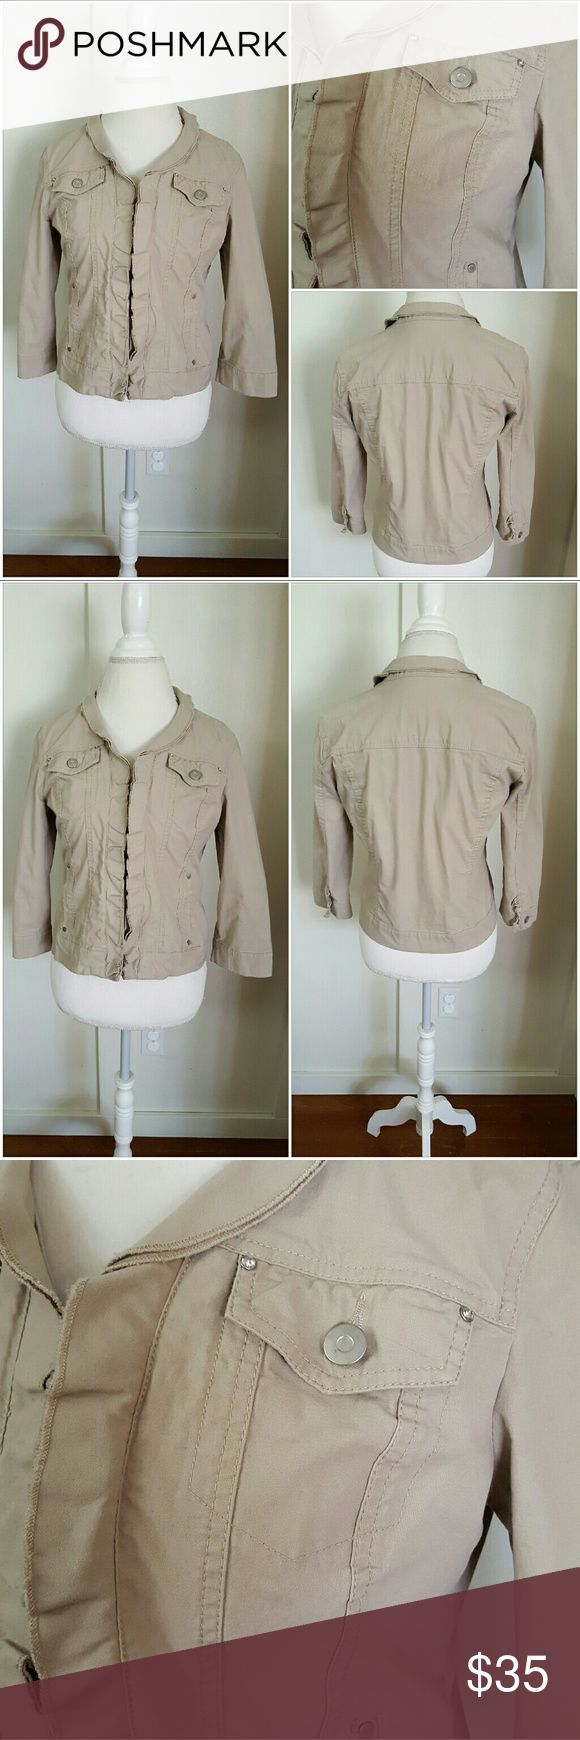 Christopher and Banks Small Tan Jean Jacket Christopher and Banks small tan jean jacket. Long sleeves. Hook and eye closure down the front. Ruffles down the front closure. Four front pockets. Two rhinestones on each top pocket. Pre-owned and in good condition. The bottom hook and eye closure is missing, however, there is not much space in between that one and the one above it. In other words, you won't be able to tell. (Also they are easy to find at fabric stores) 98% Cotton 2% Spandex…